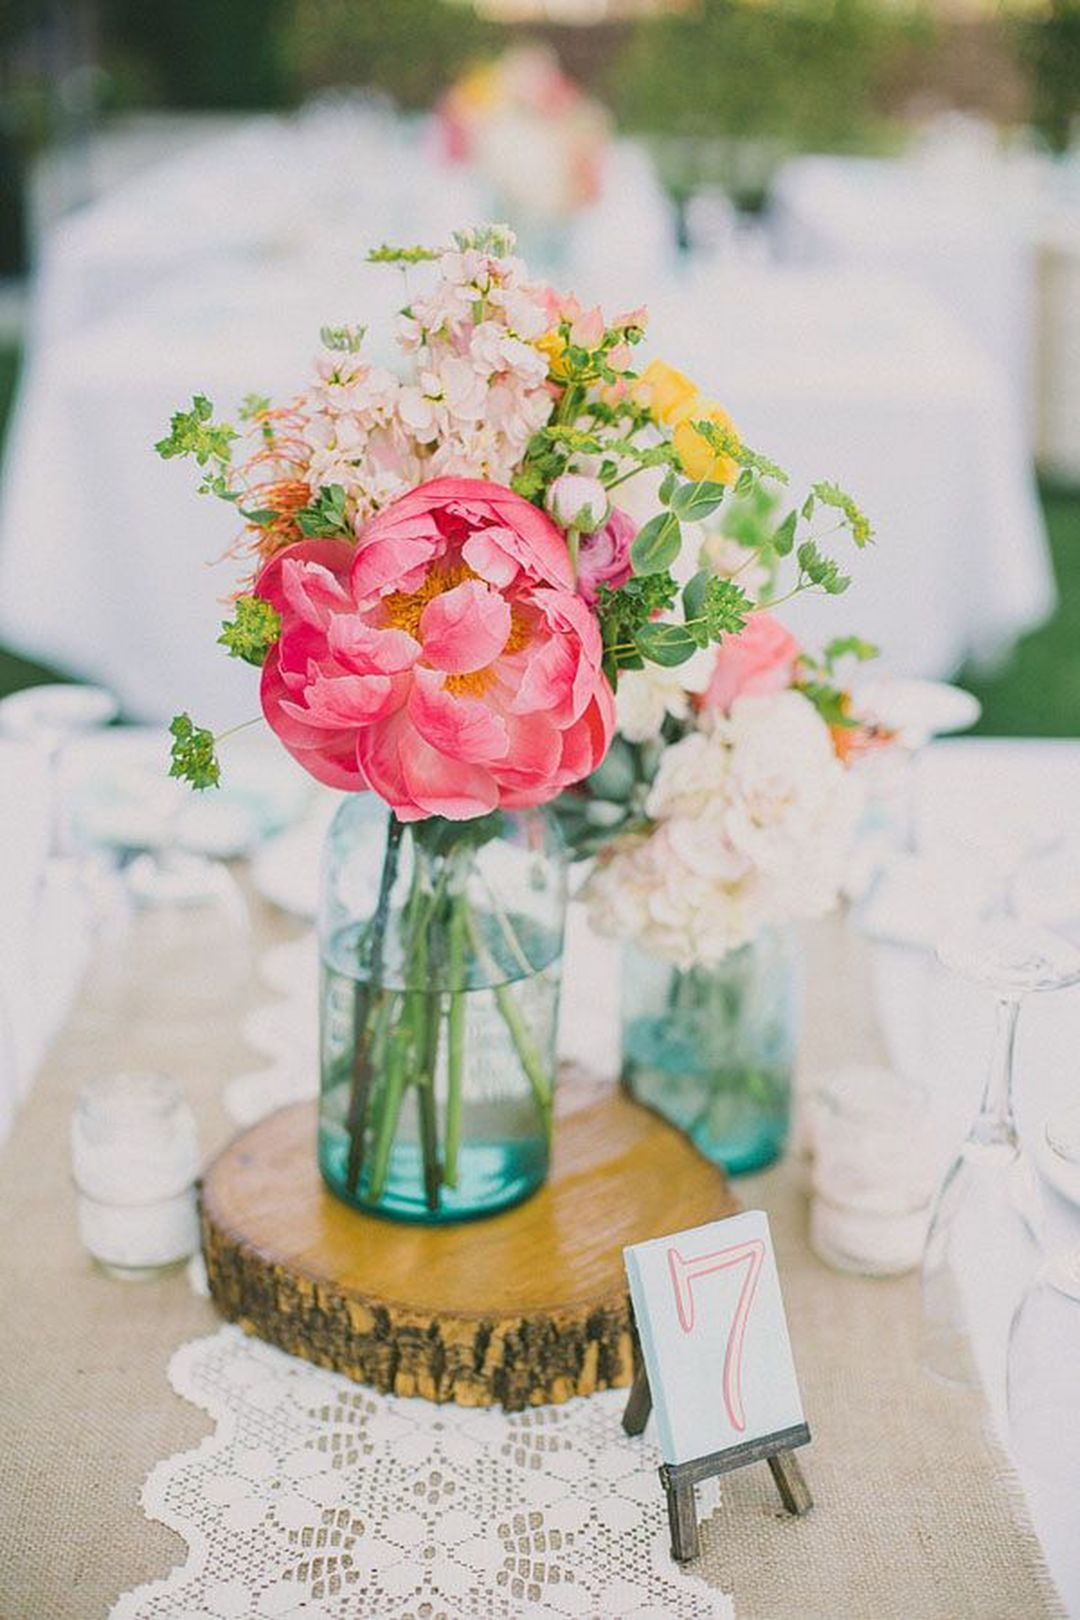 35 super beautiful coral flower arrangements ideas for your wedding rh pinterest com